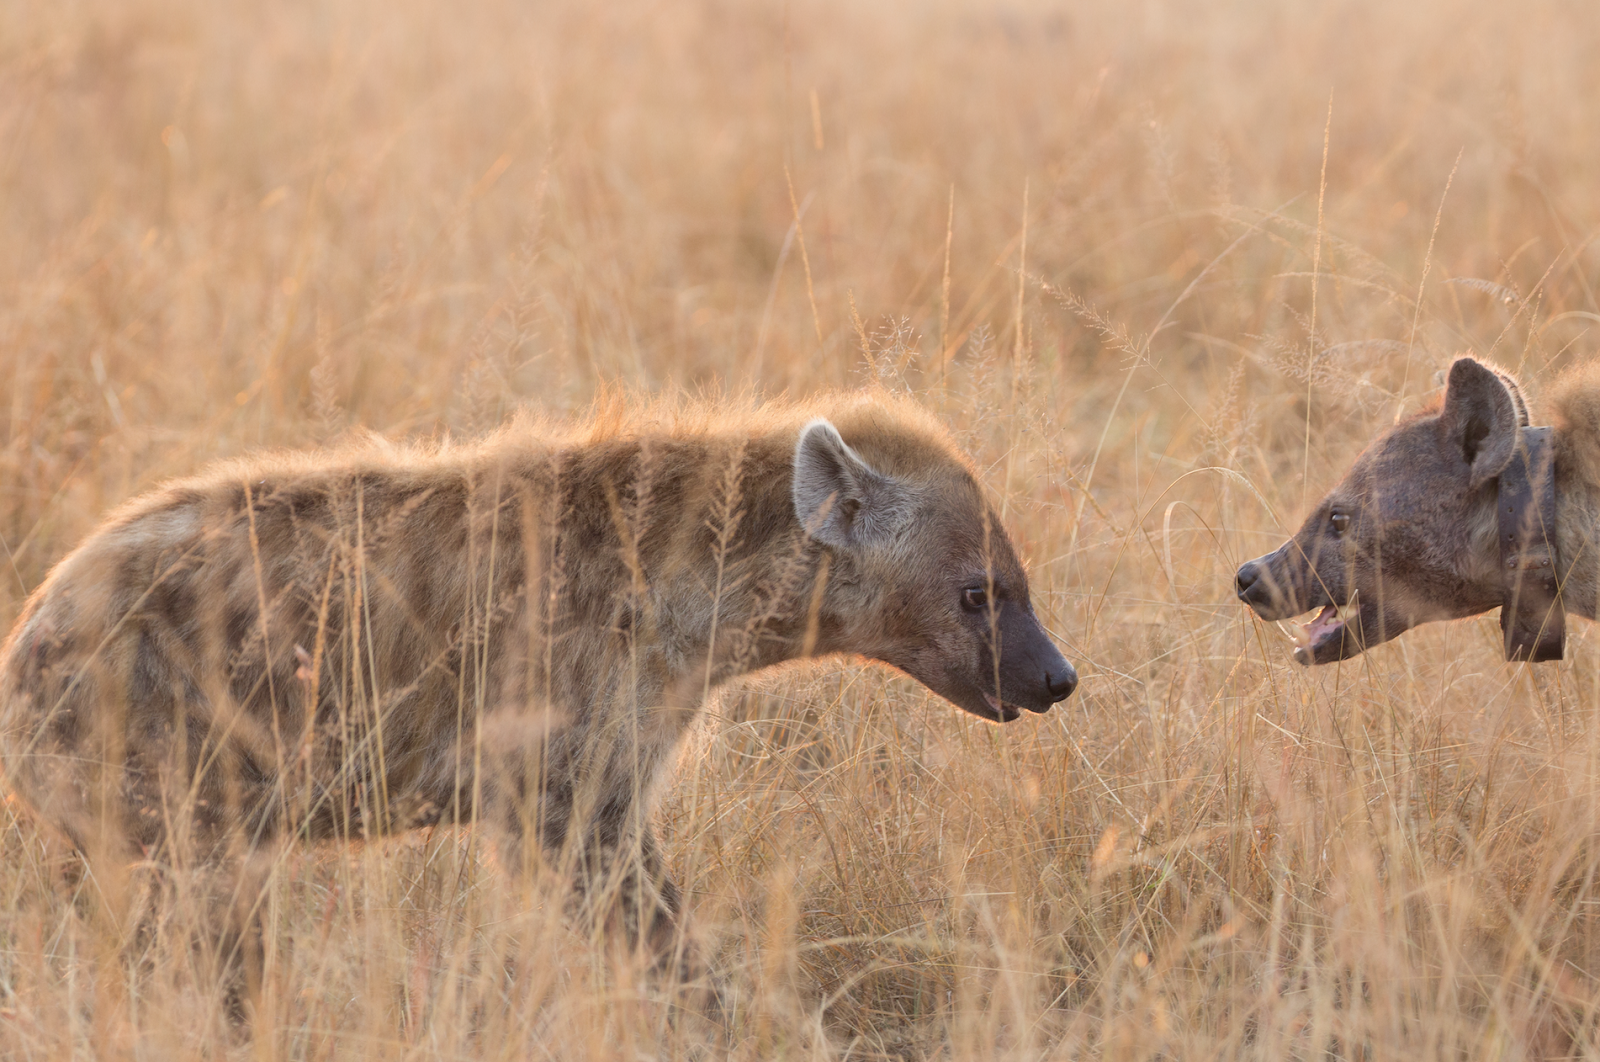 Notes From Kenya Msu Hyena Research Self-Control Matters -9597